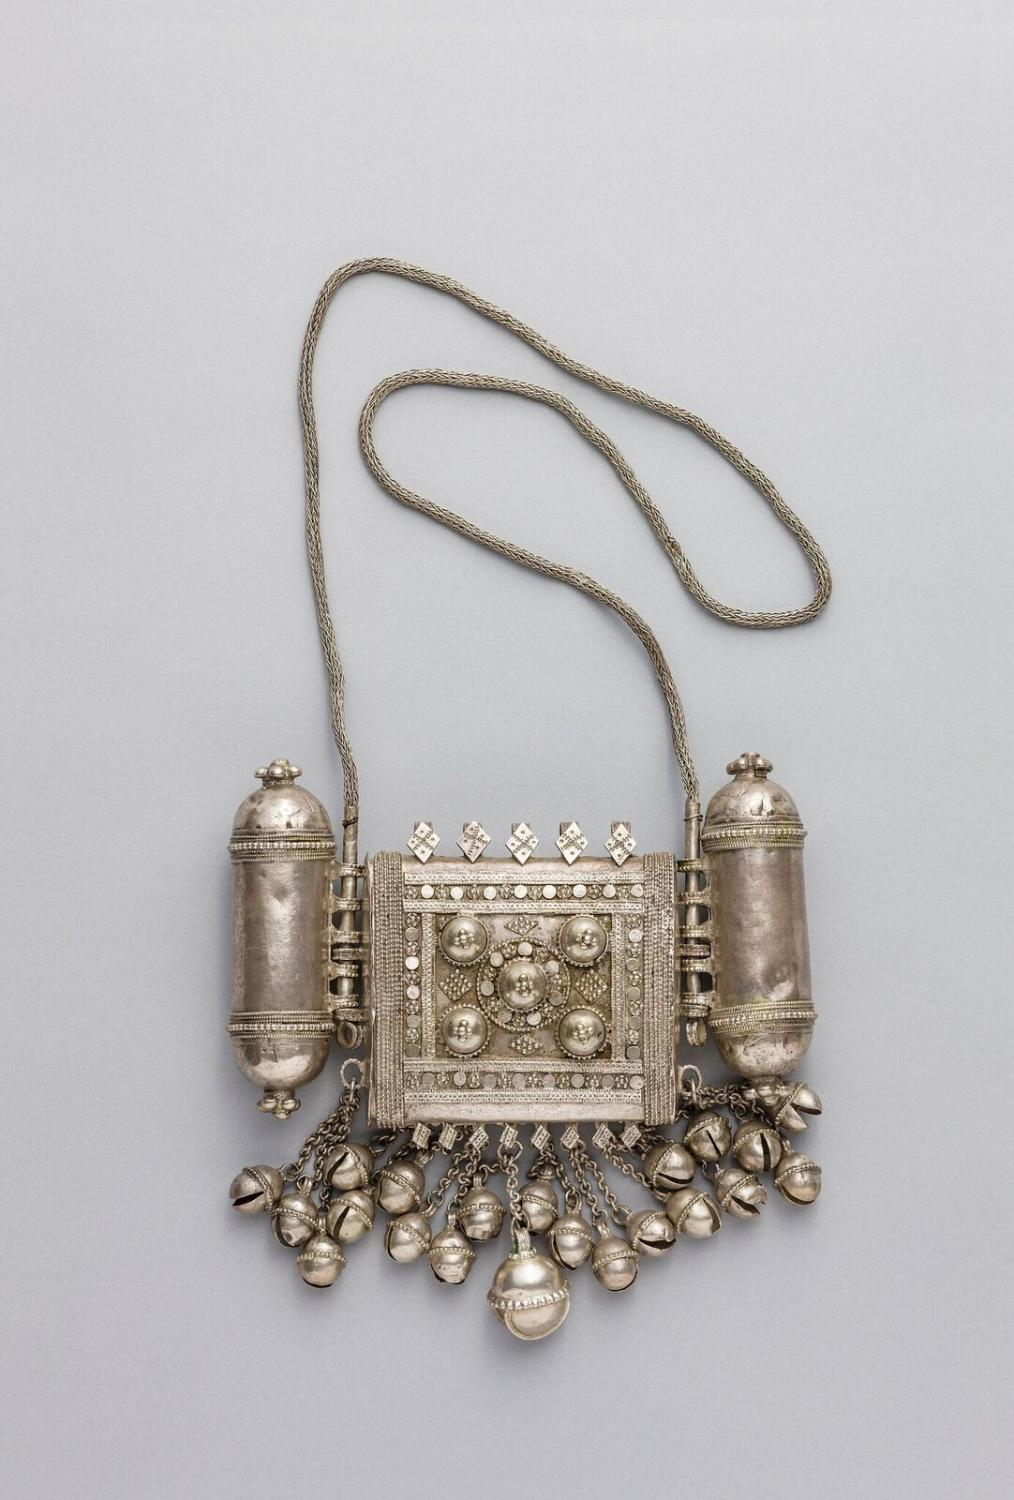 Kenya, Wasini Island, ca. 19th century. Amulet Case. Silver. Lamu Museum, National Museums of Kenya, no. 18